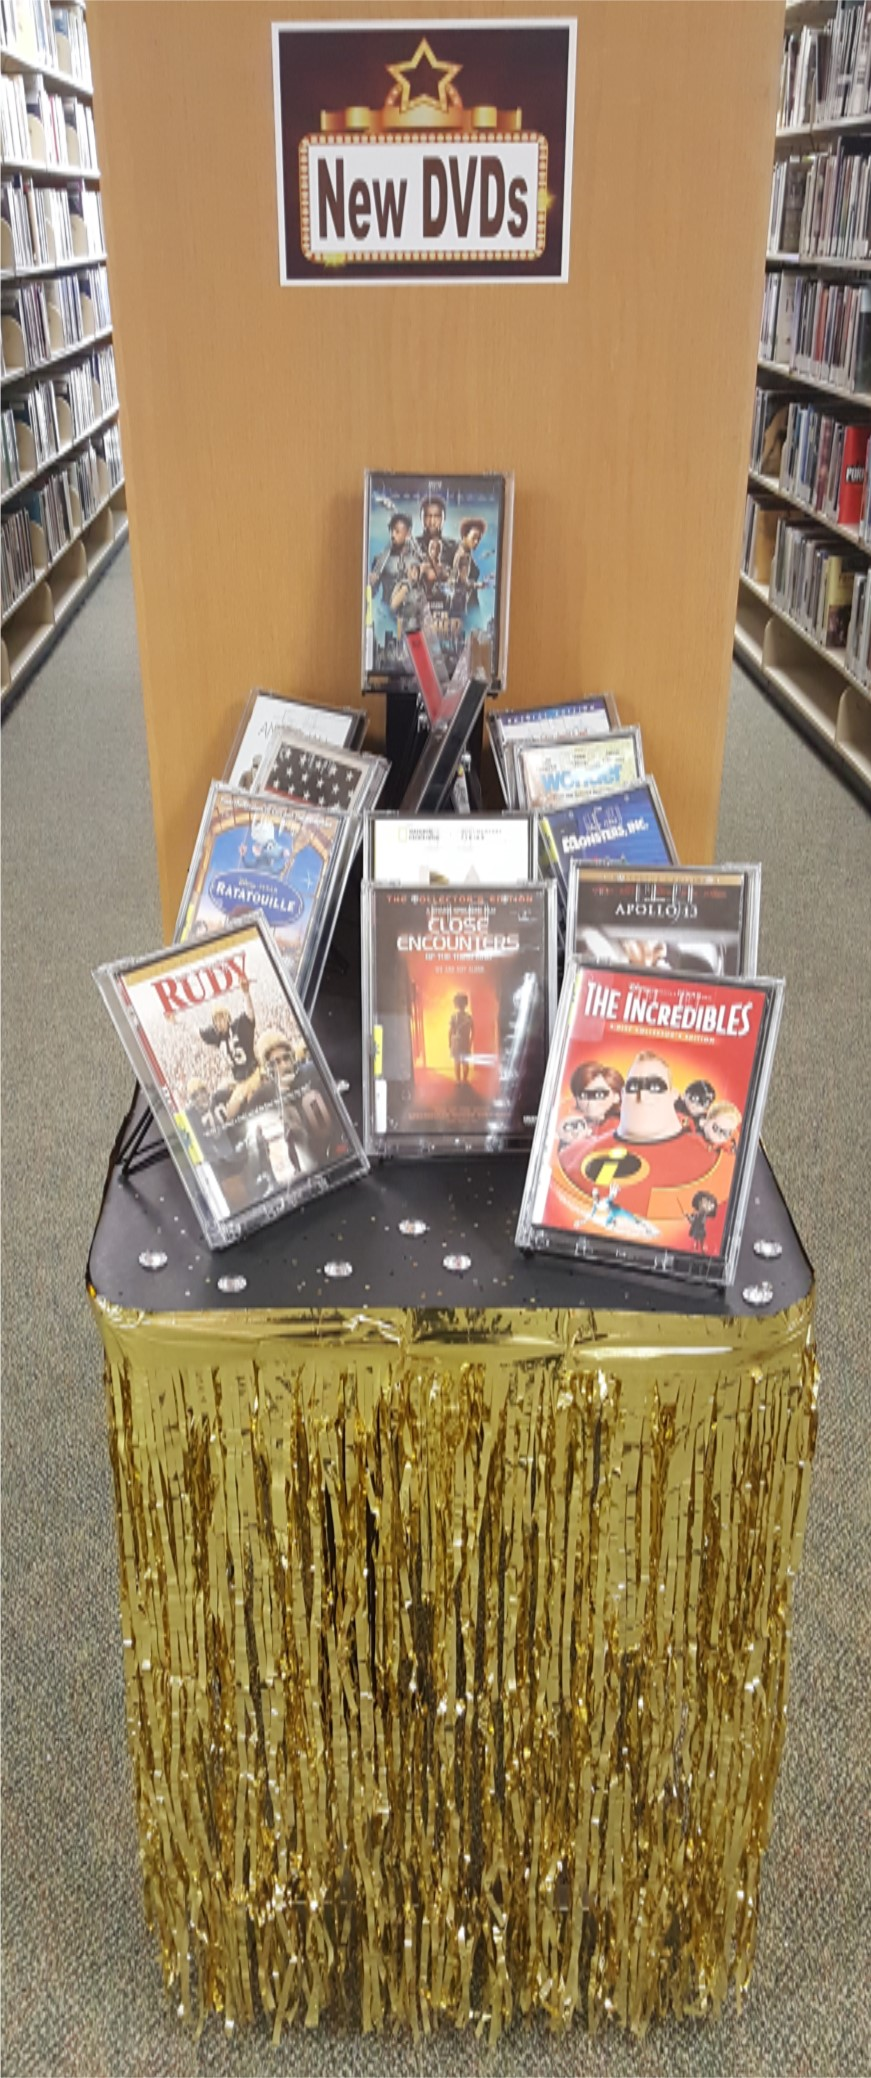 Image:  Display_New DVDs, 2.2019